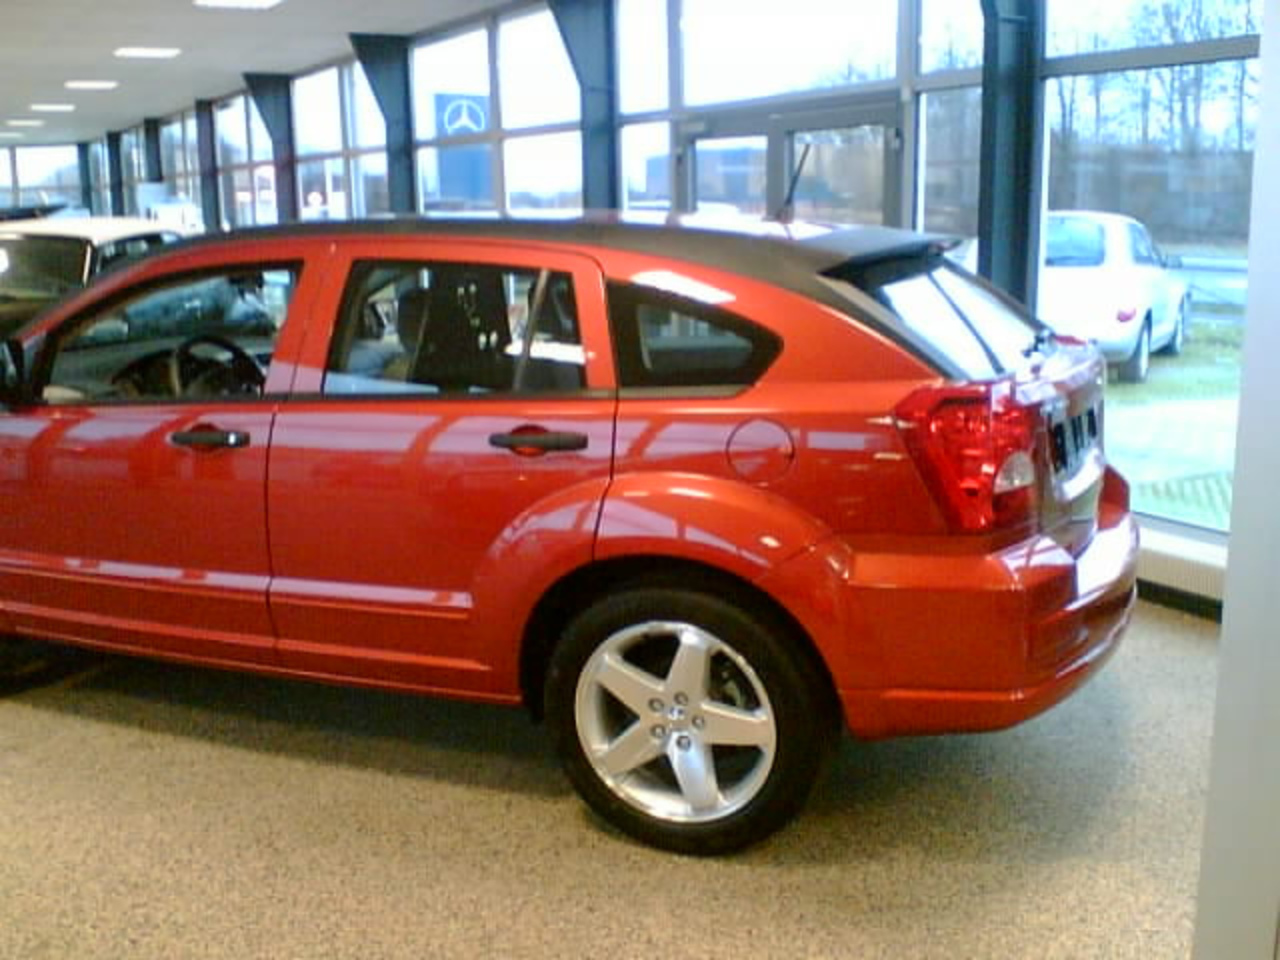 Dodge Caliber SXT CRD Sunburst Orange Min bil VBag | Flickr ...